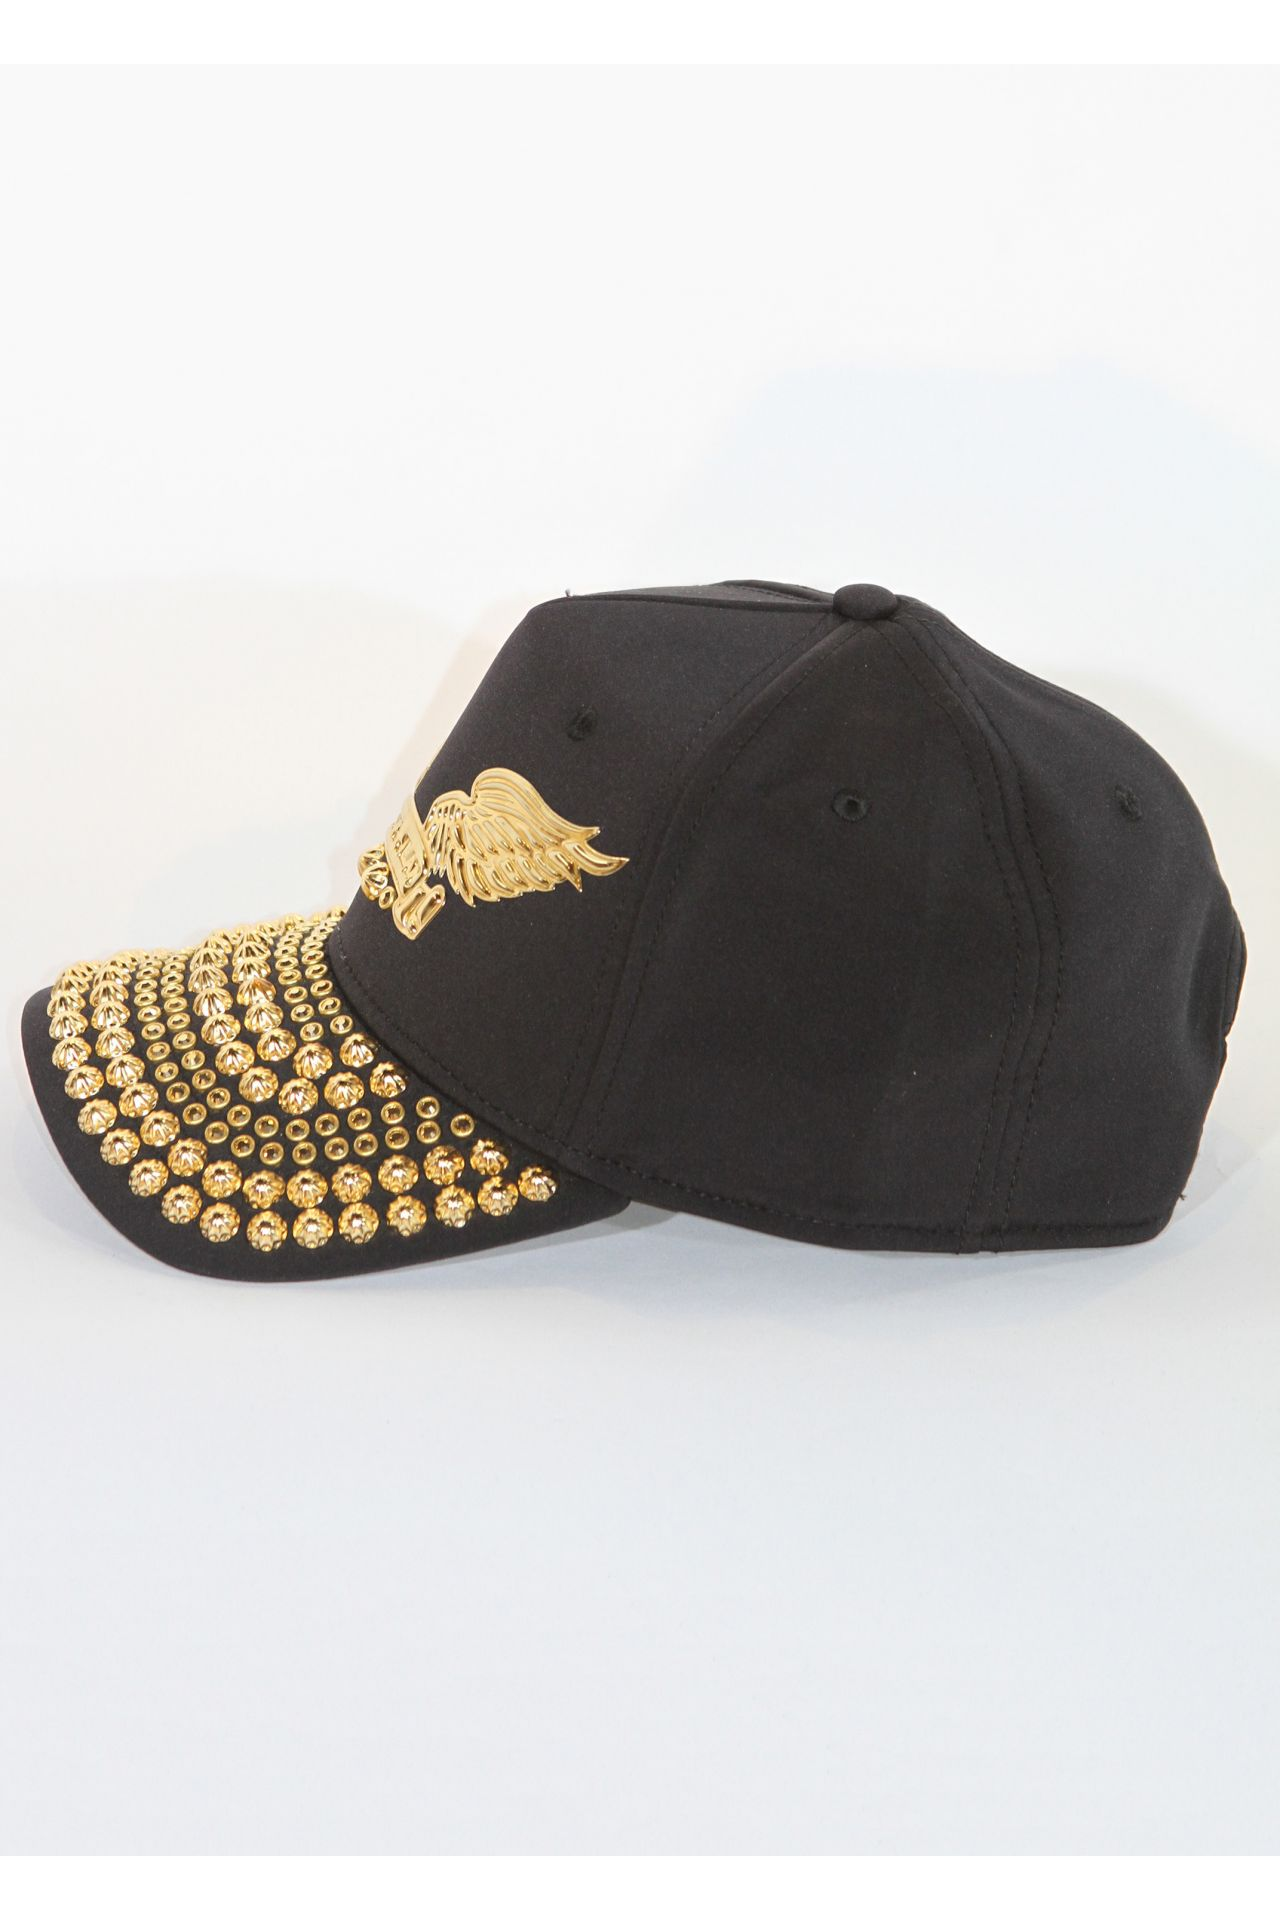 BLACK CAP WITH GOLD SW AND PARACHUTES